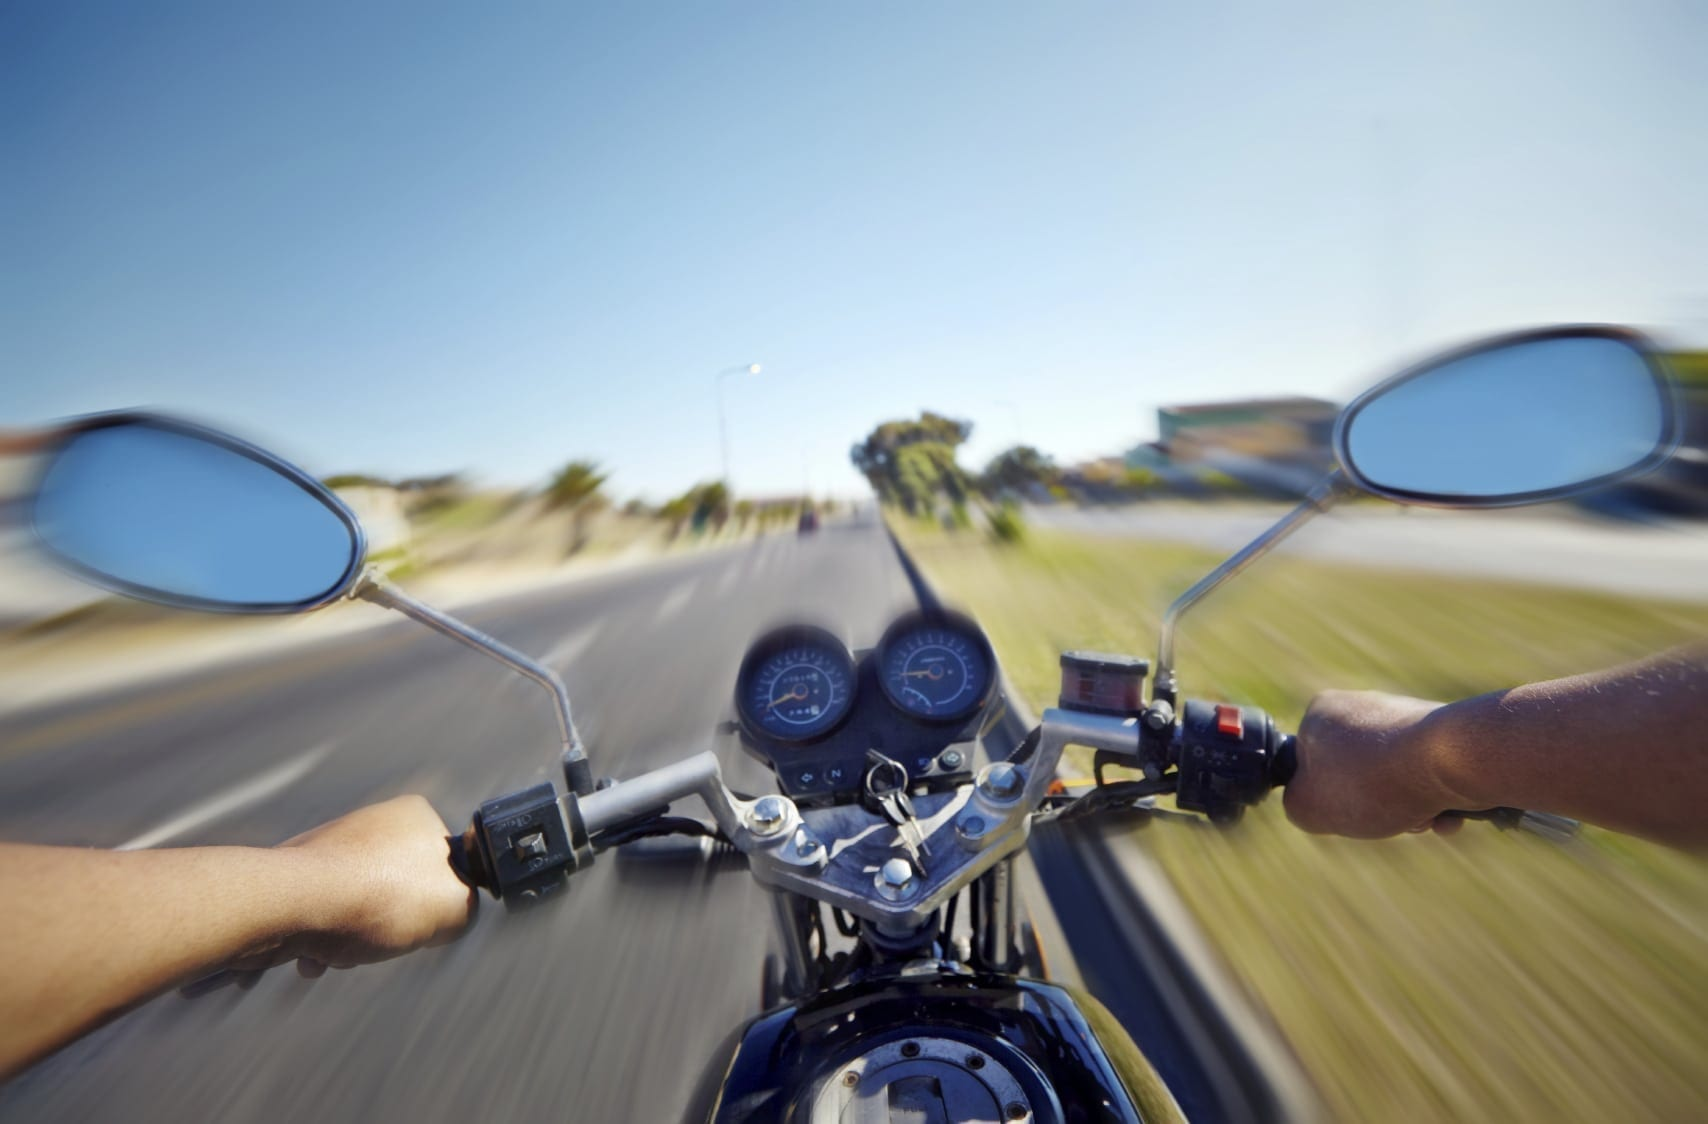 Motorcycle Accident in Paterson | Peter N. Davis & Associates LLC